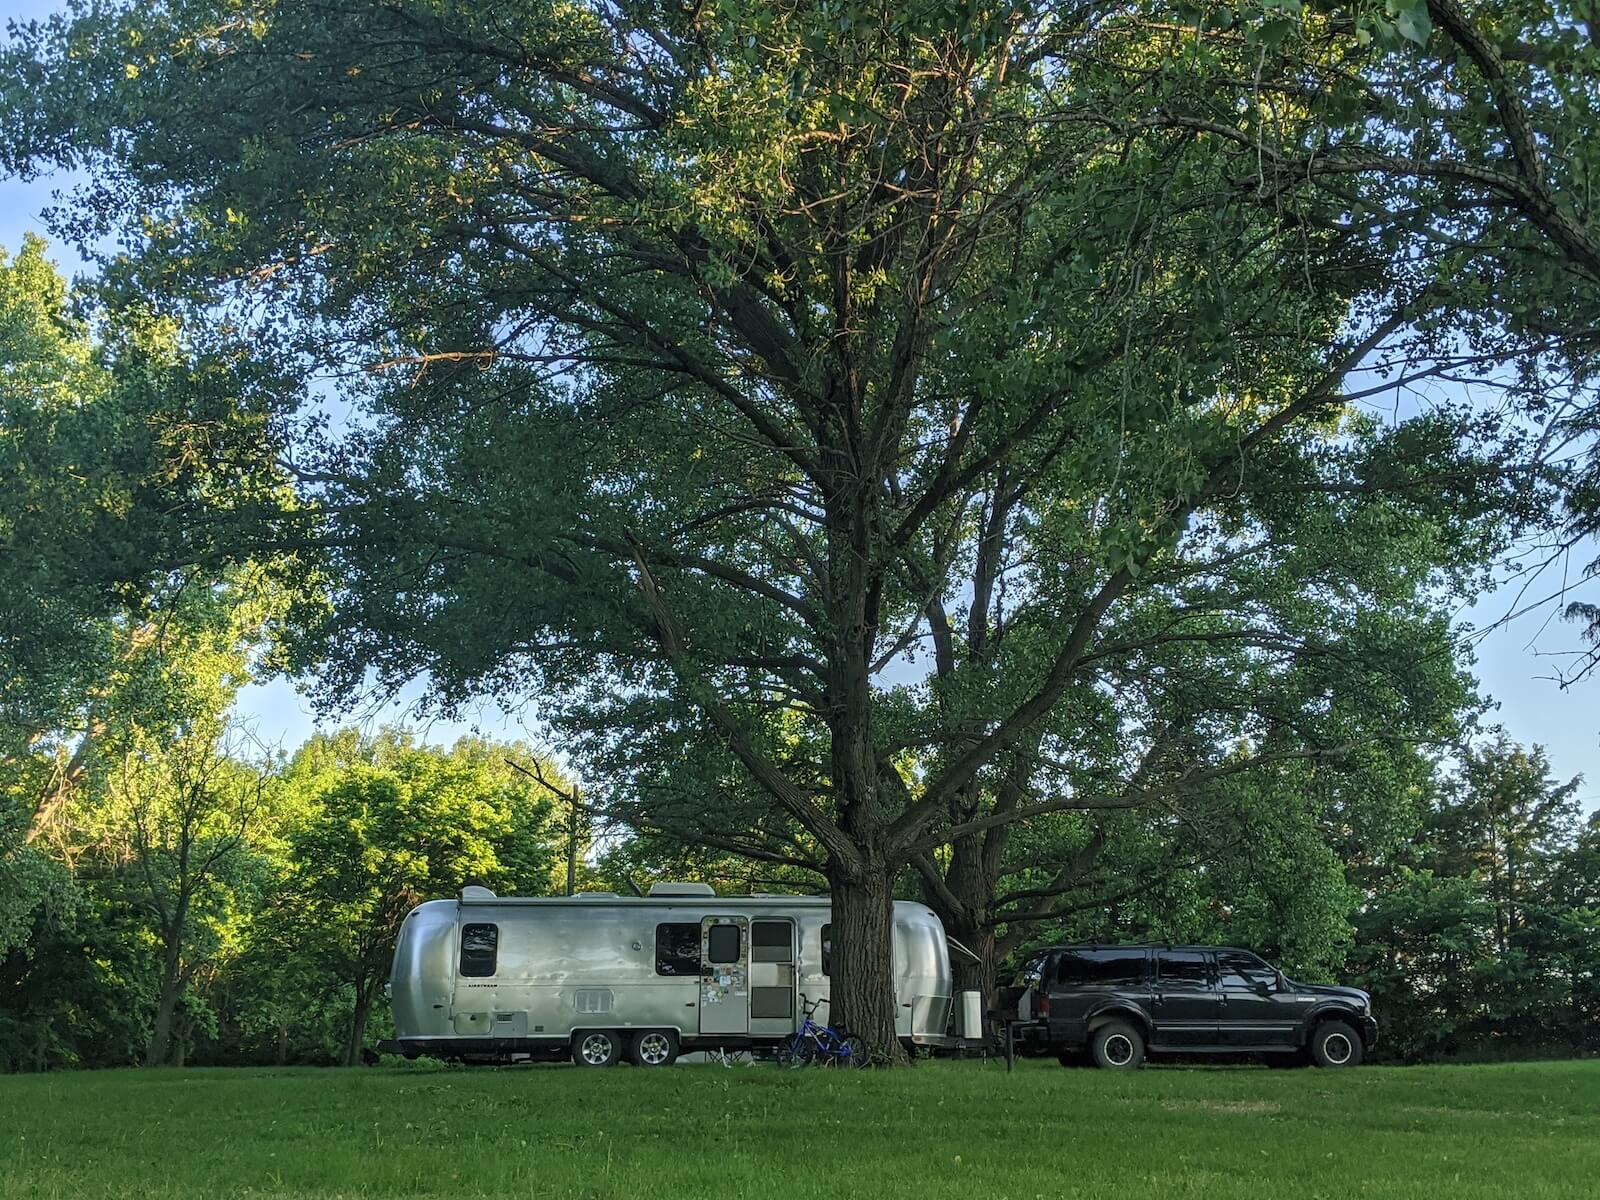 large truck and airstream rv parking underneath large tree with grassy field in the foreground travel nursing in an RV